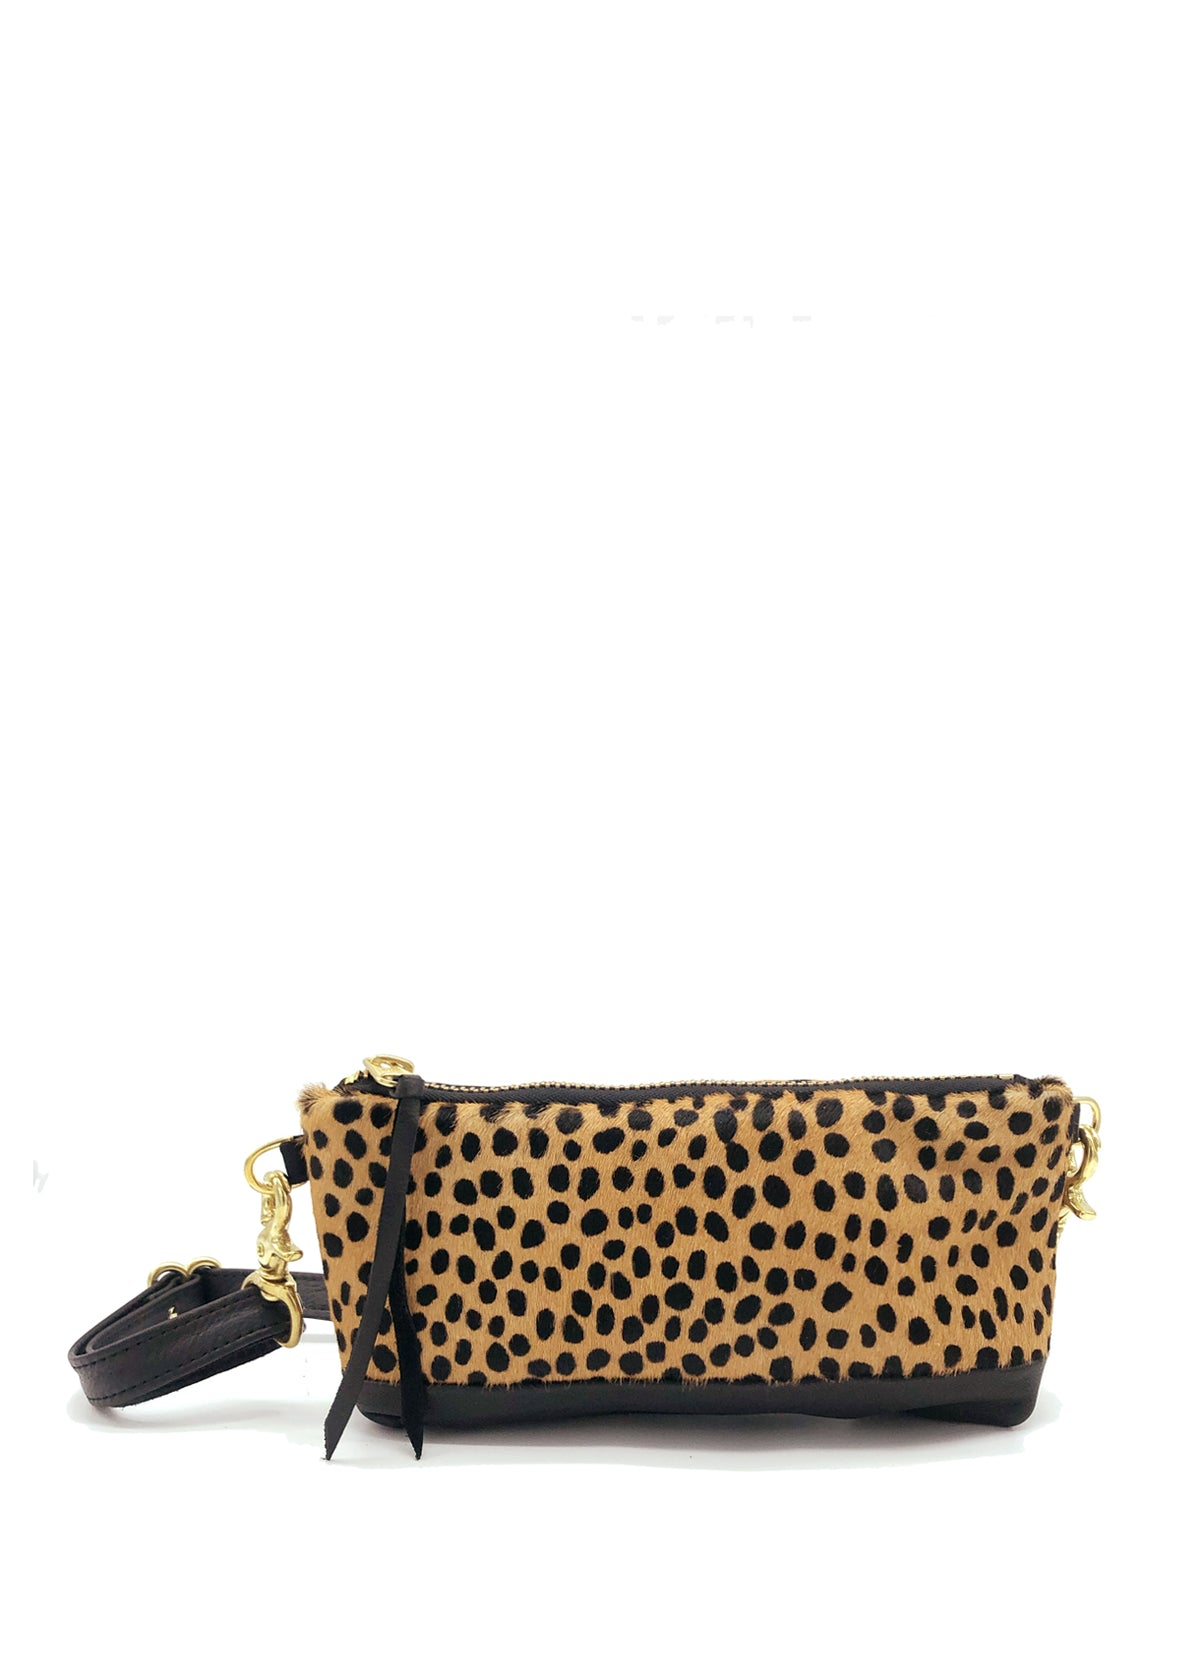 JAX JULIA MINI VIDA  /  Fannypack & Clutch